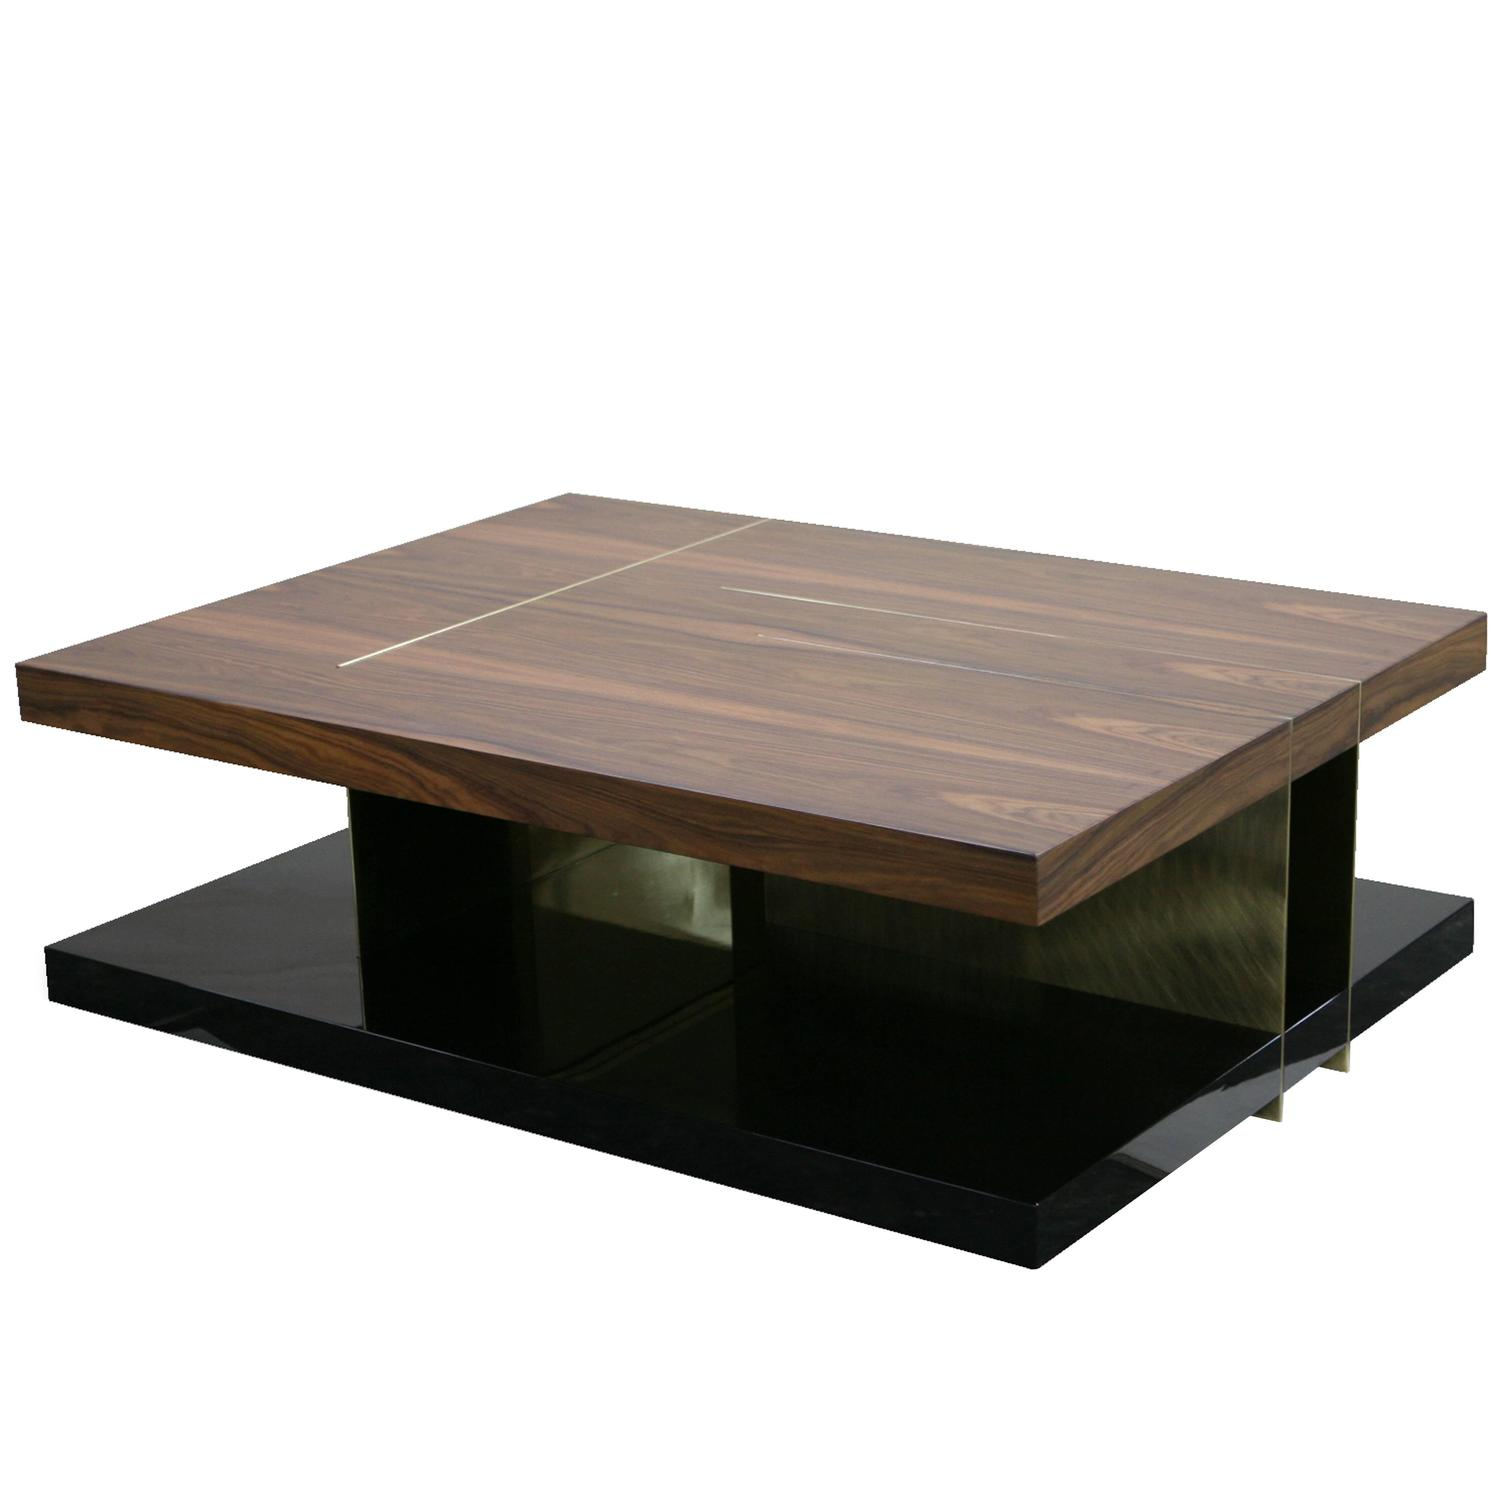 European modern timber lacquer brass rectangular lallan coffee table by brabbu for sale at 1stdibs Contemporary coffee tables design